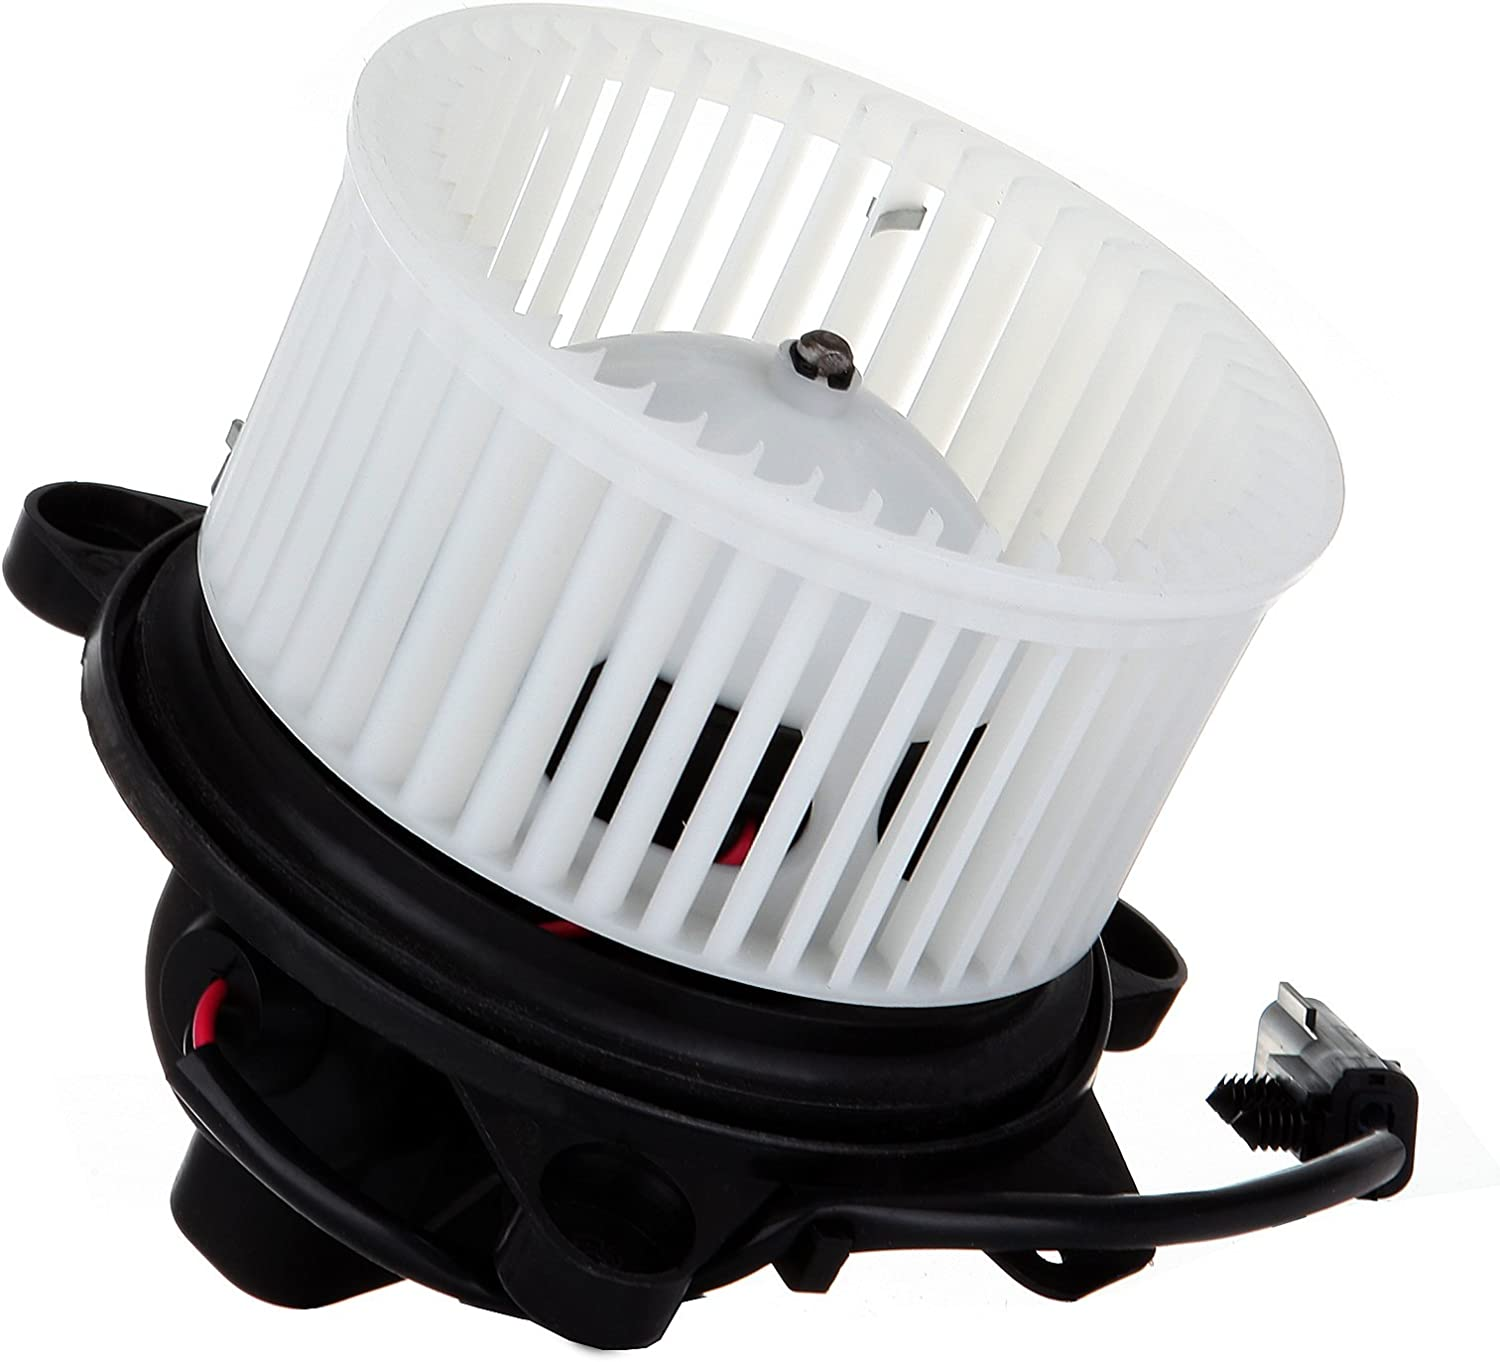 OCPTY A/C Heater Blower Motor ABS w/Fan Cage Air Conditioning HVAC Replacement fit for 2001-2004 Dodge Dakota/2001-2003 Dodge Durango